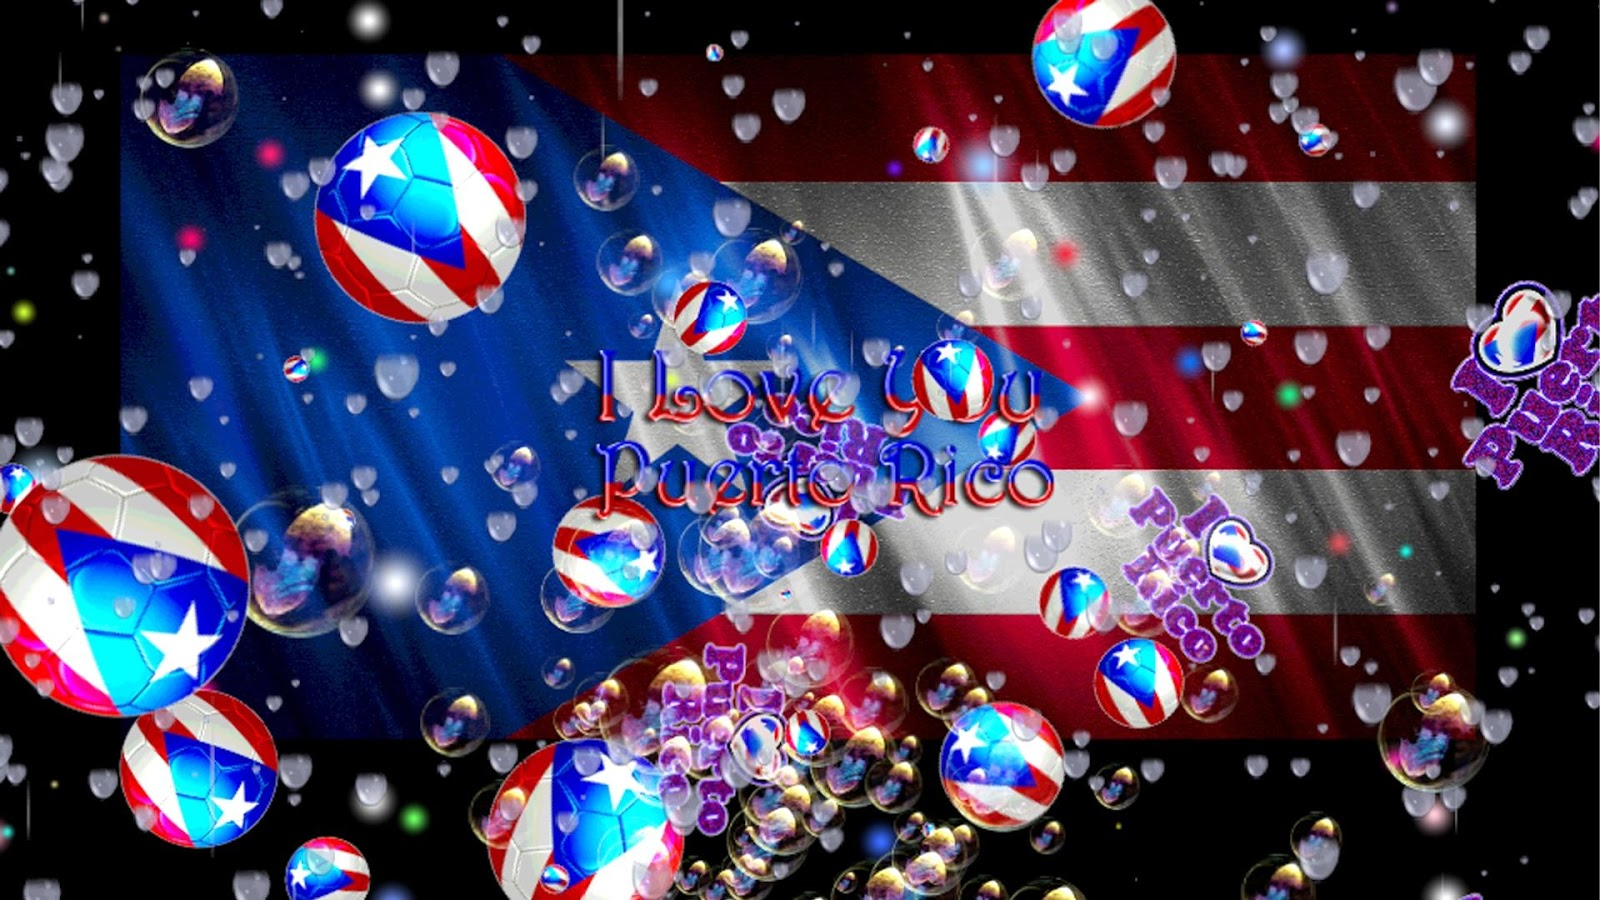 Puerto Rico Flag Love - Android Apps on Google Play